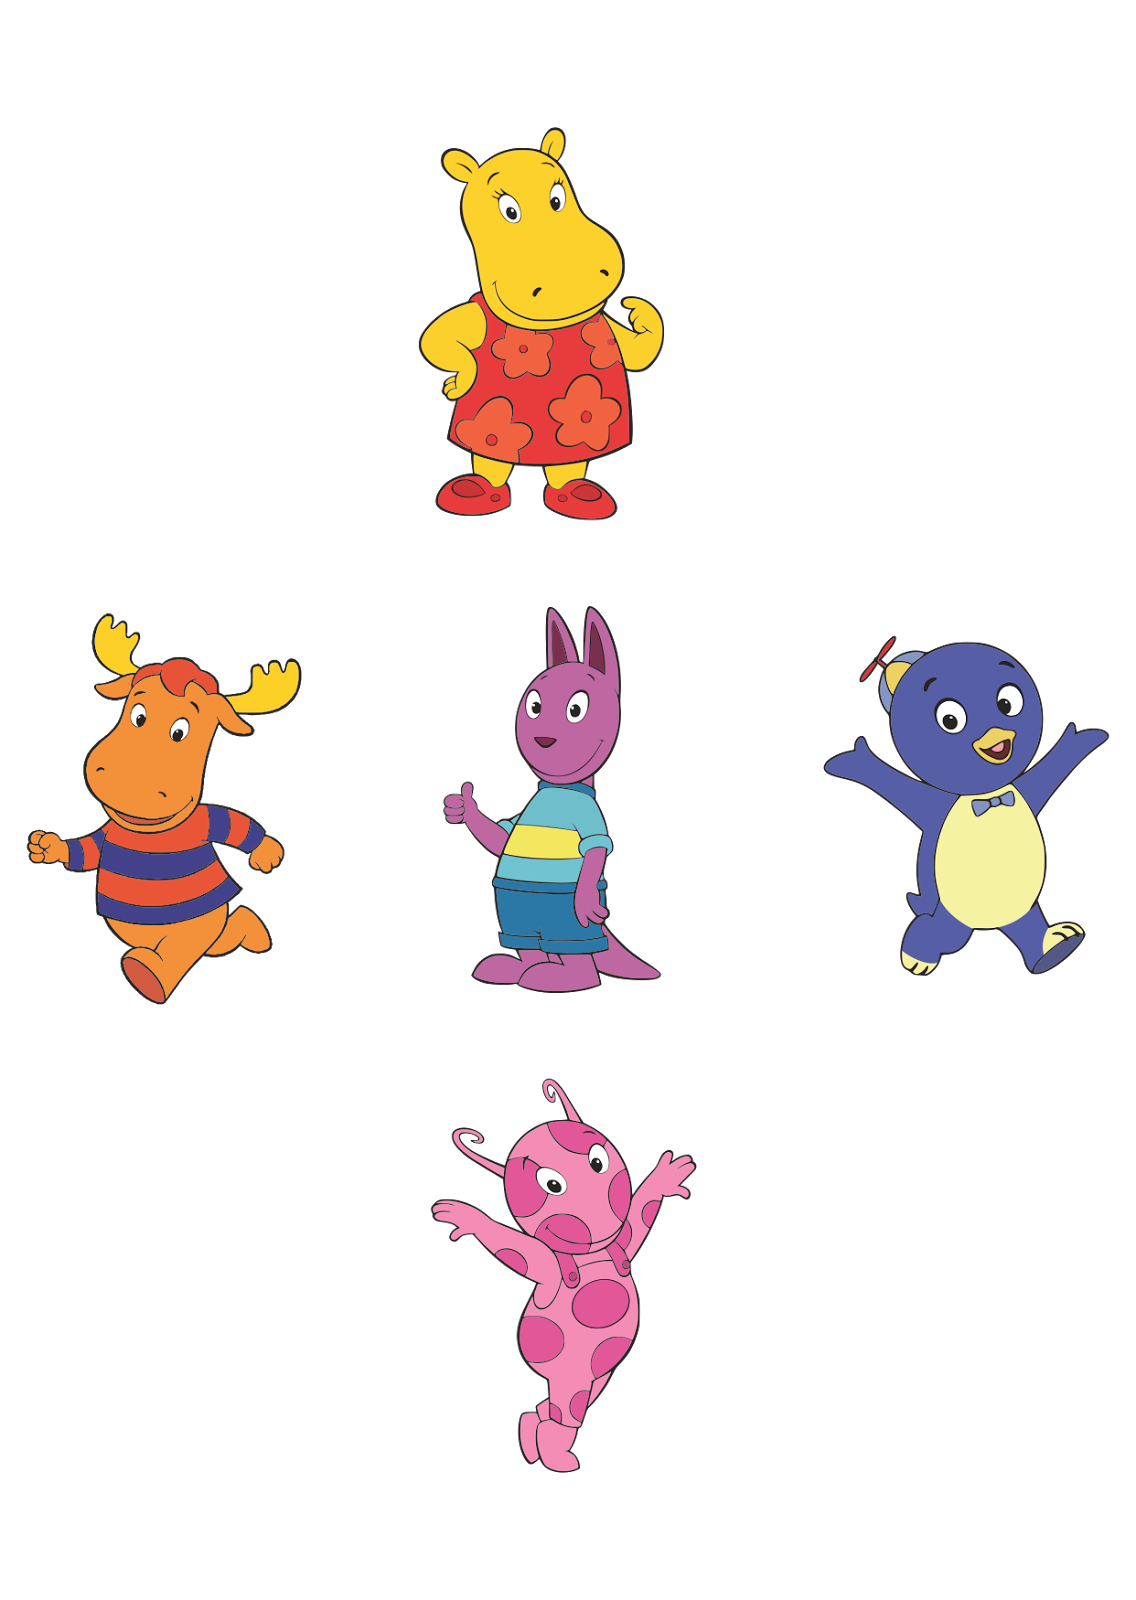 The Backyardigans Logo Vector download free